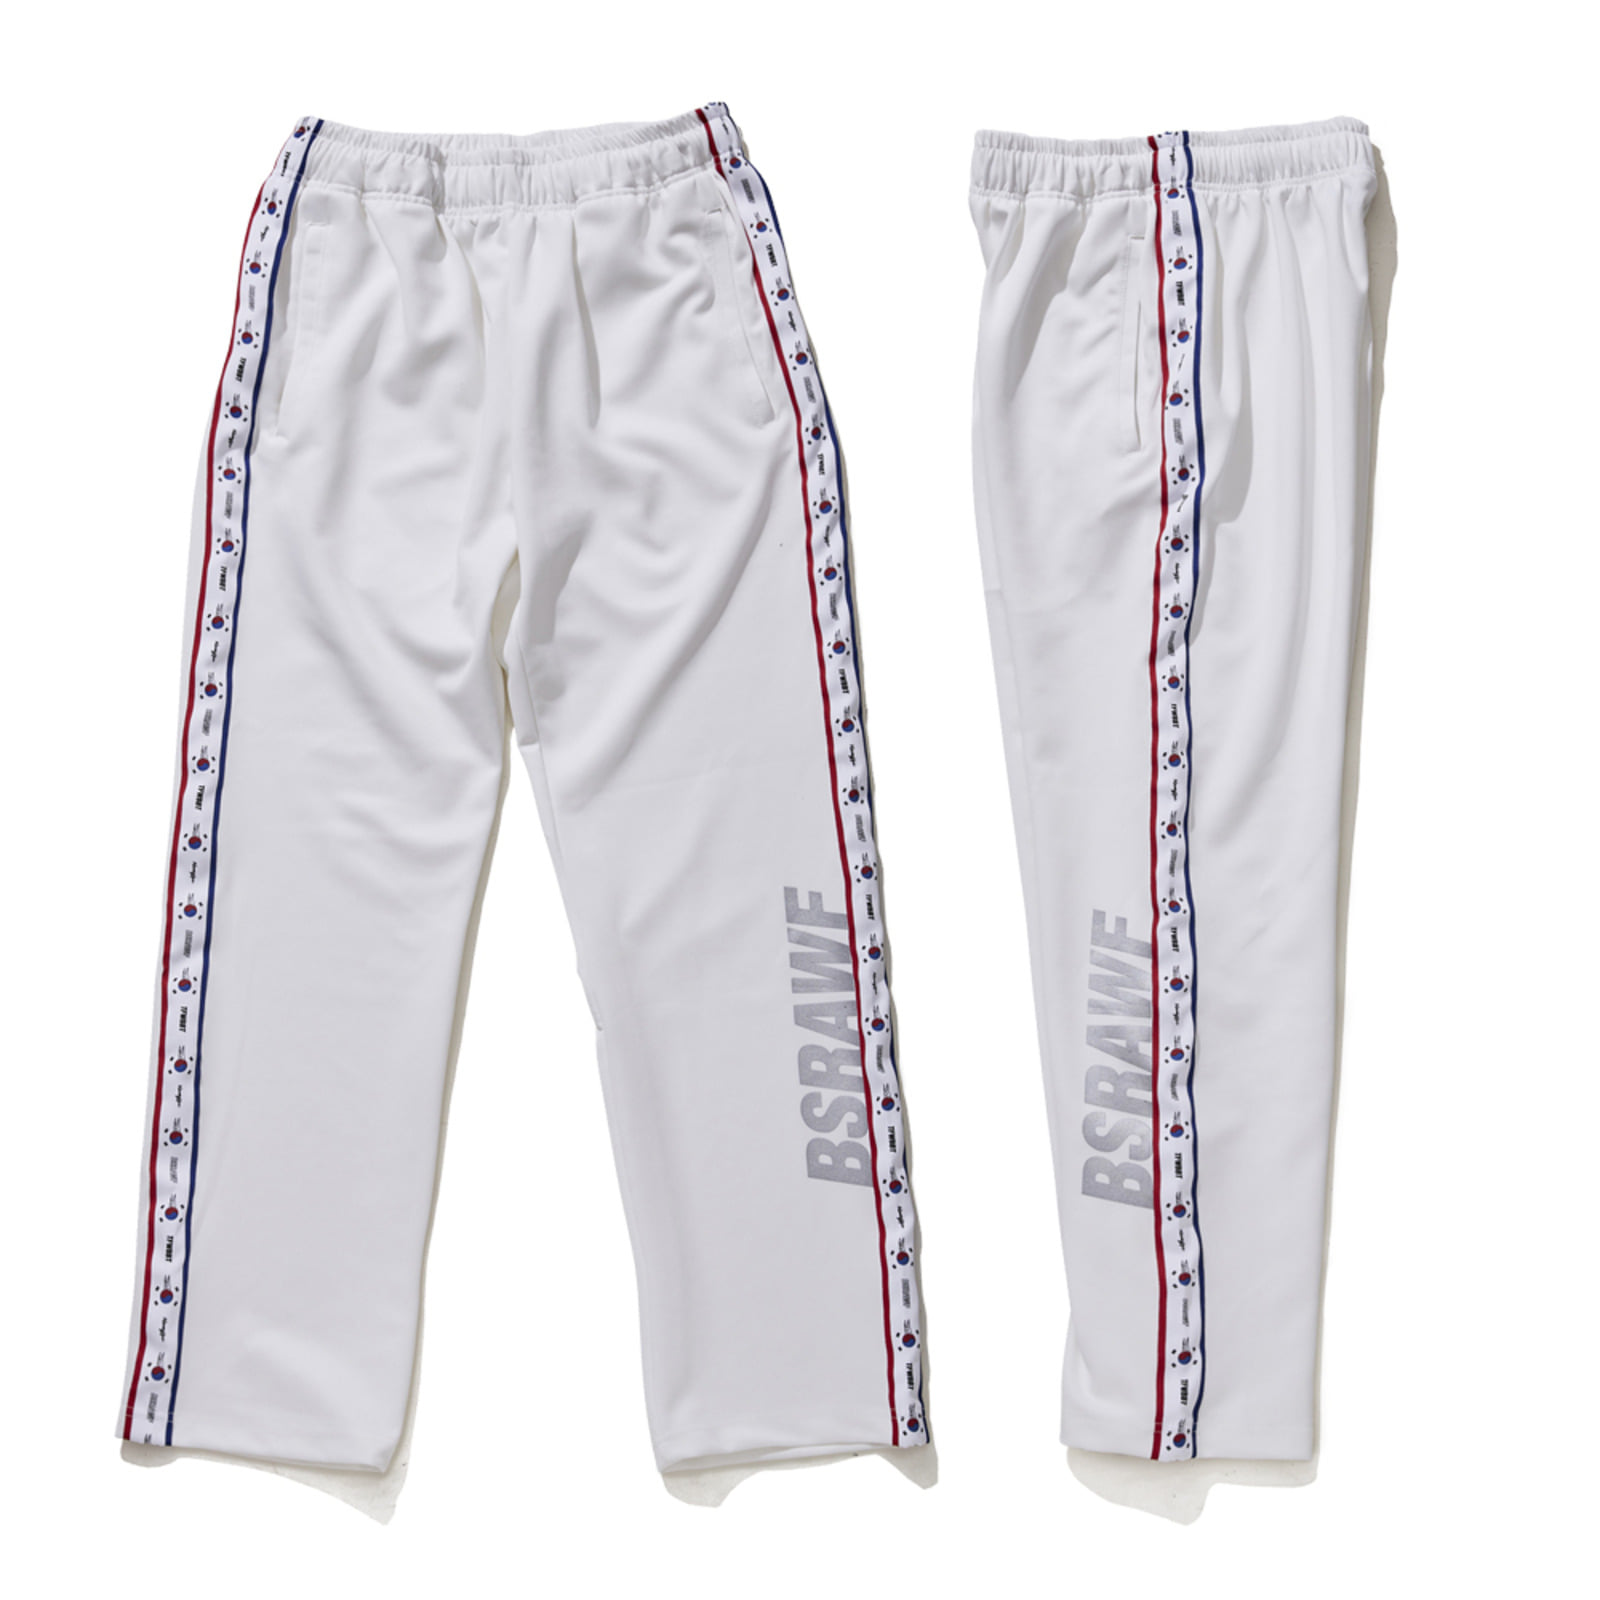 GR KOREA TRACK PANTS WHITE